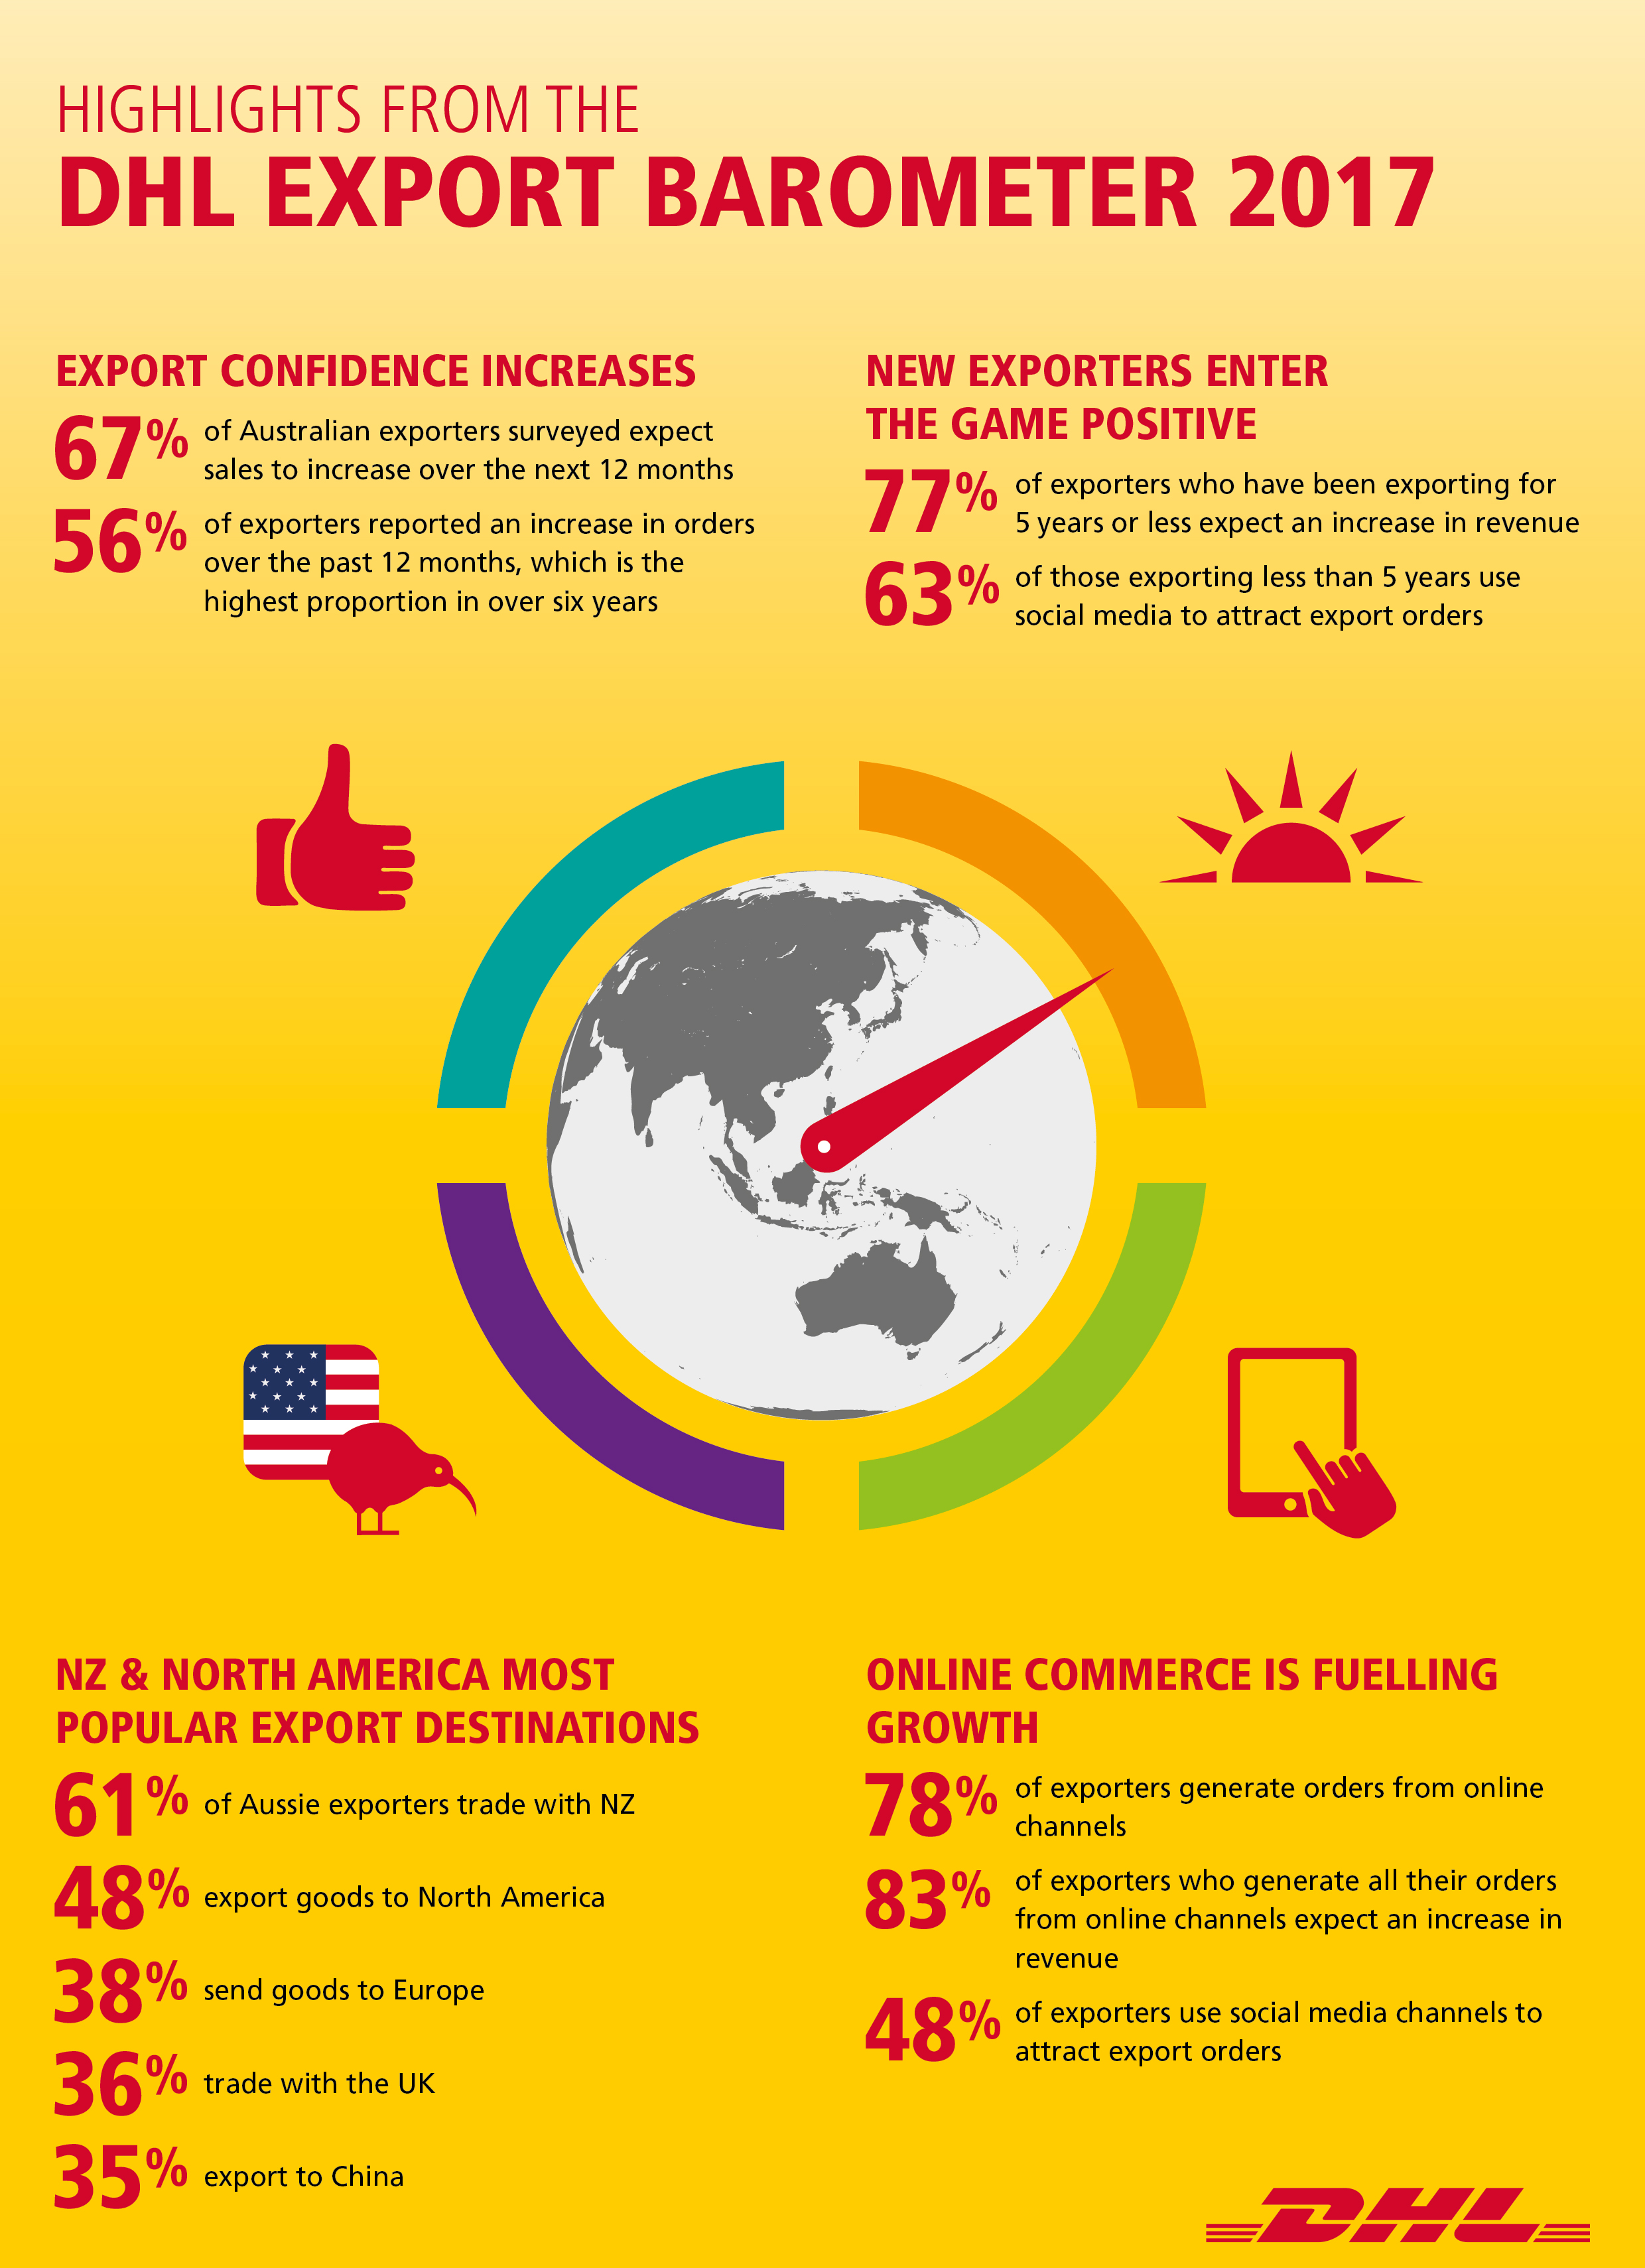 DHL Export Barometer 2017_Infographic With Highlights